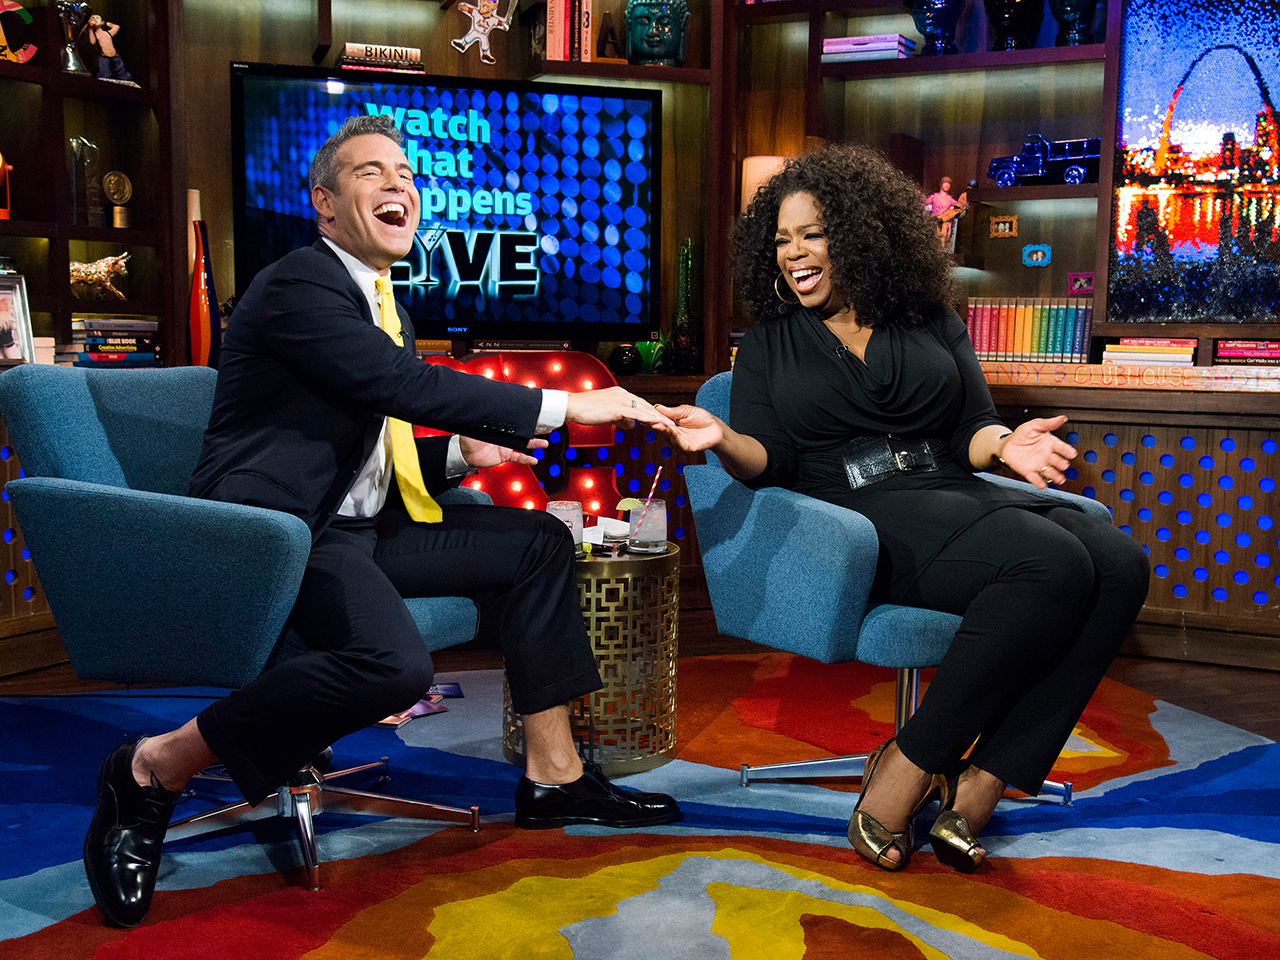 Image: Andy Cohen and Oprah Winfrey.